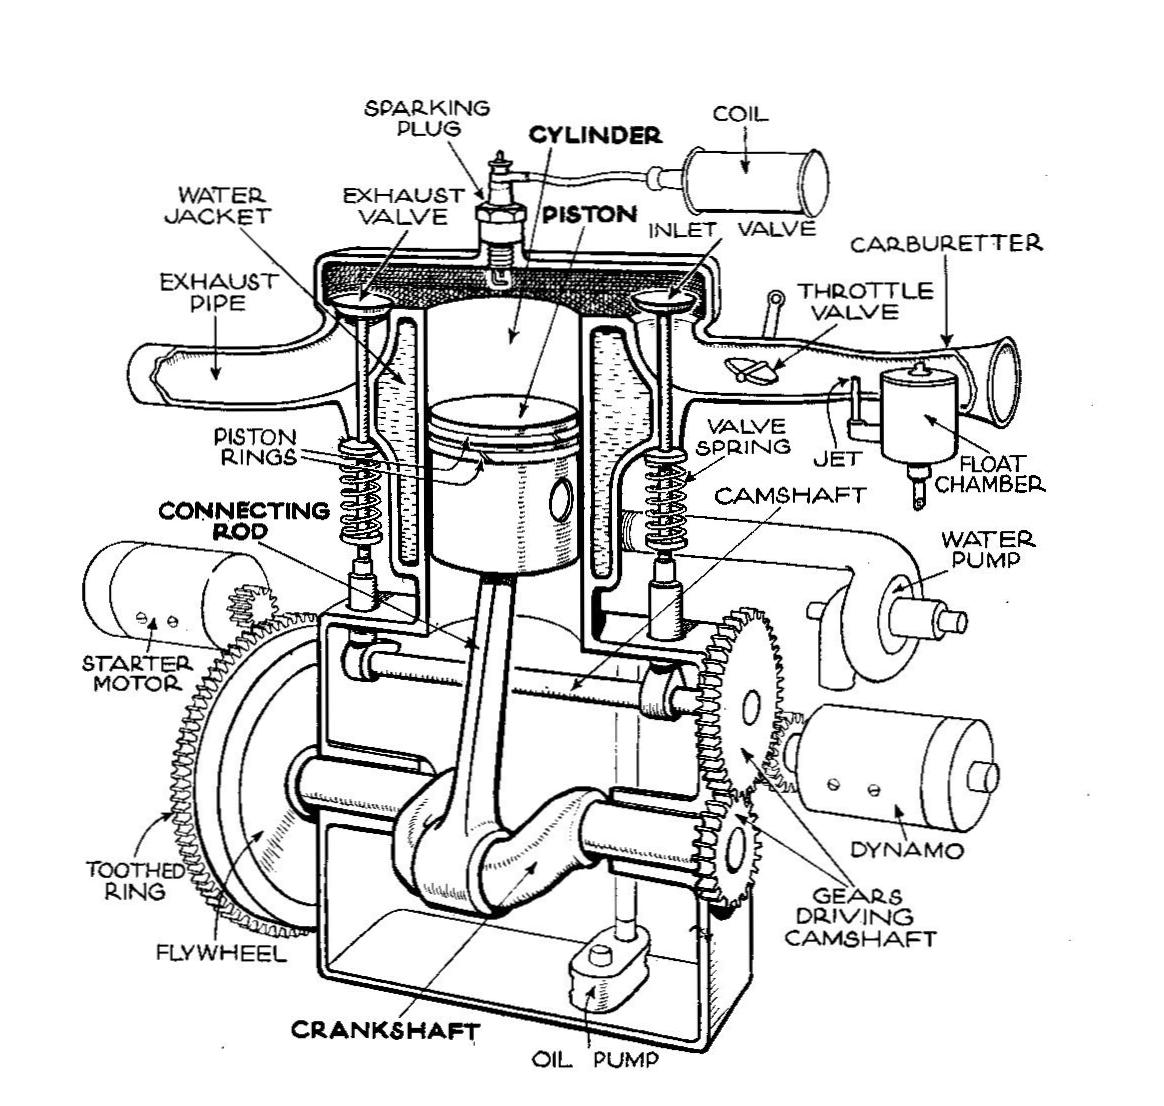 Strange Ej25 Engine Diagram Ej25 Free Engine Image For User Manual Download Wiring Cloud Icalpermsplehendilmohammedshrineorg